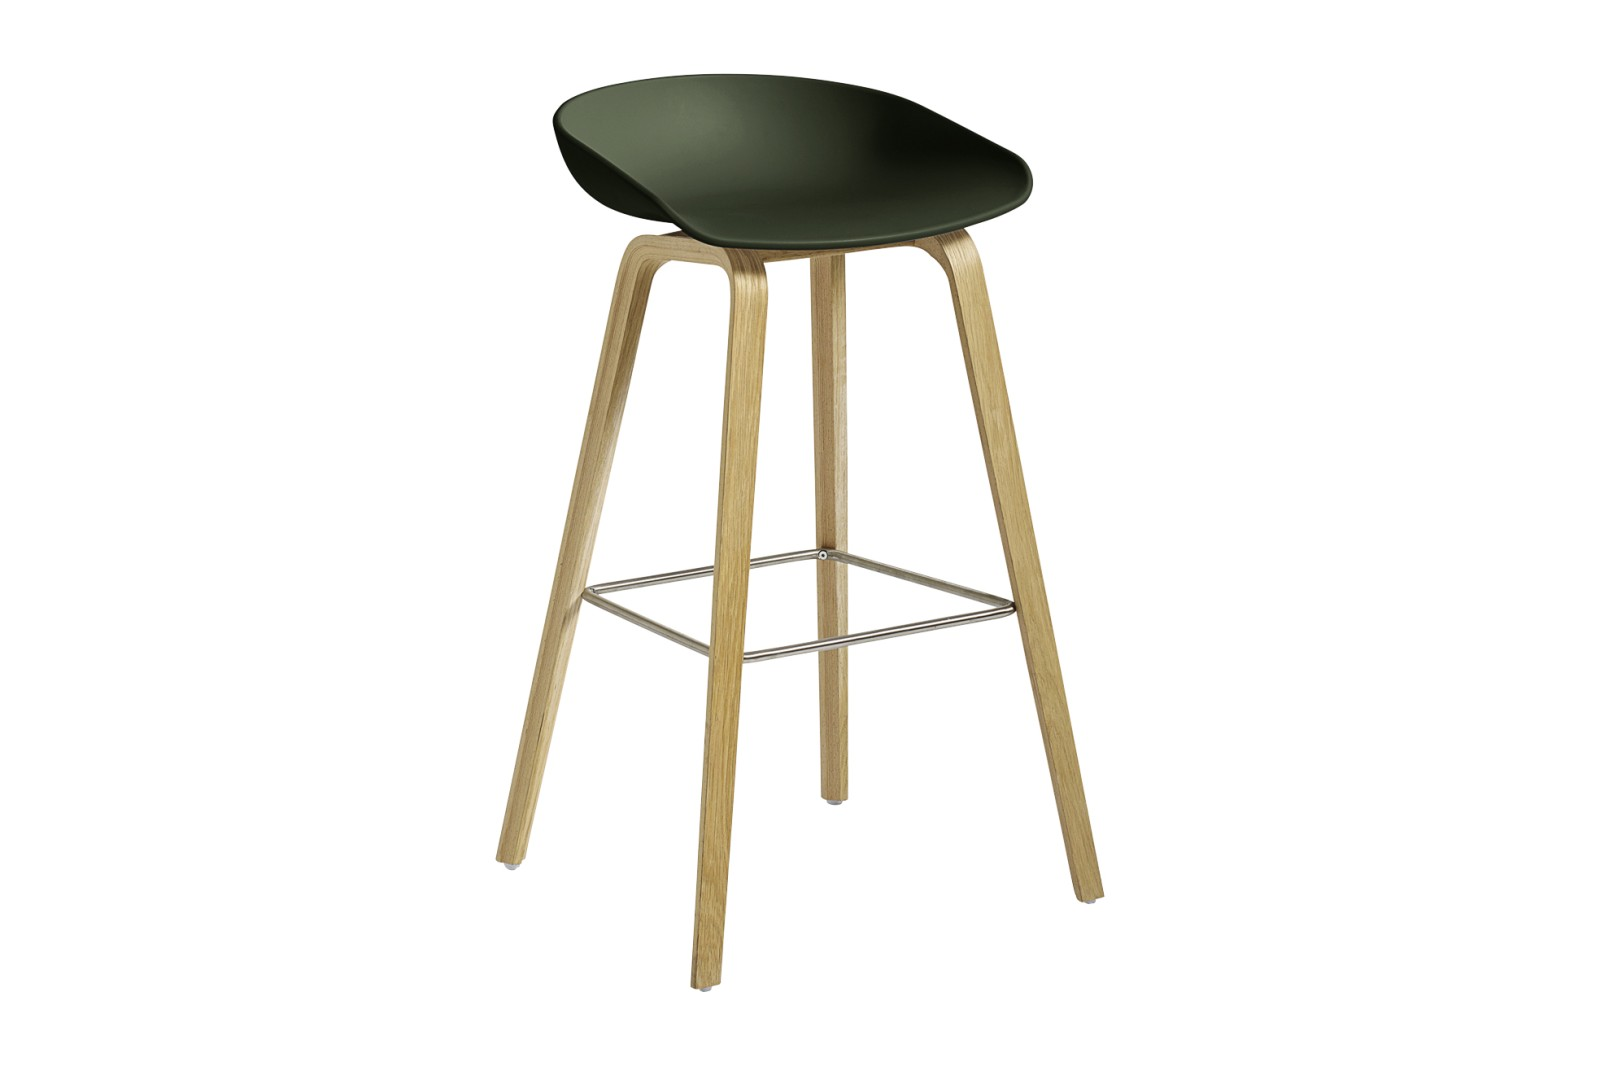 About A Stool AAS32 Clear Lacquered Oak Base, Green Seat, High, Stainless Steel